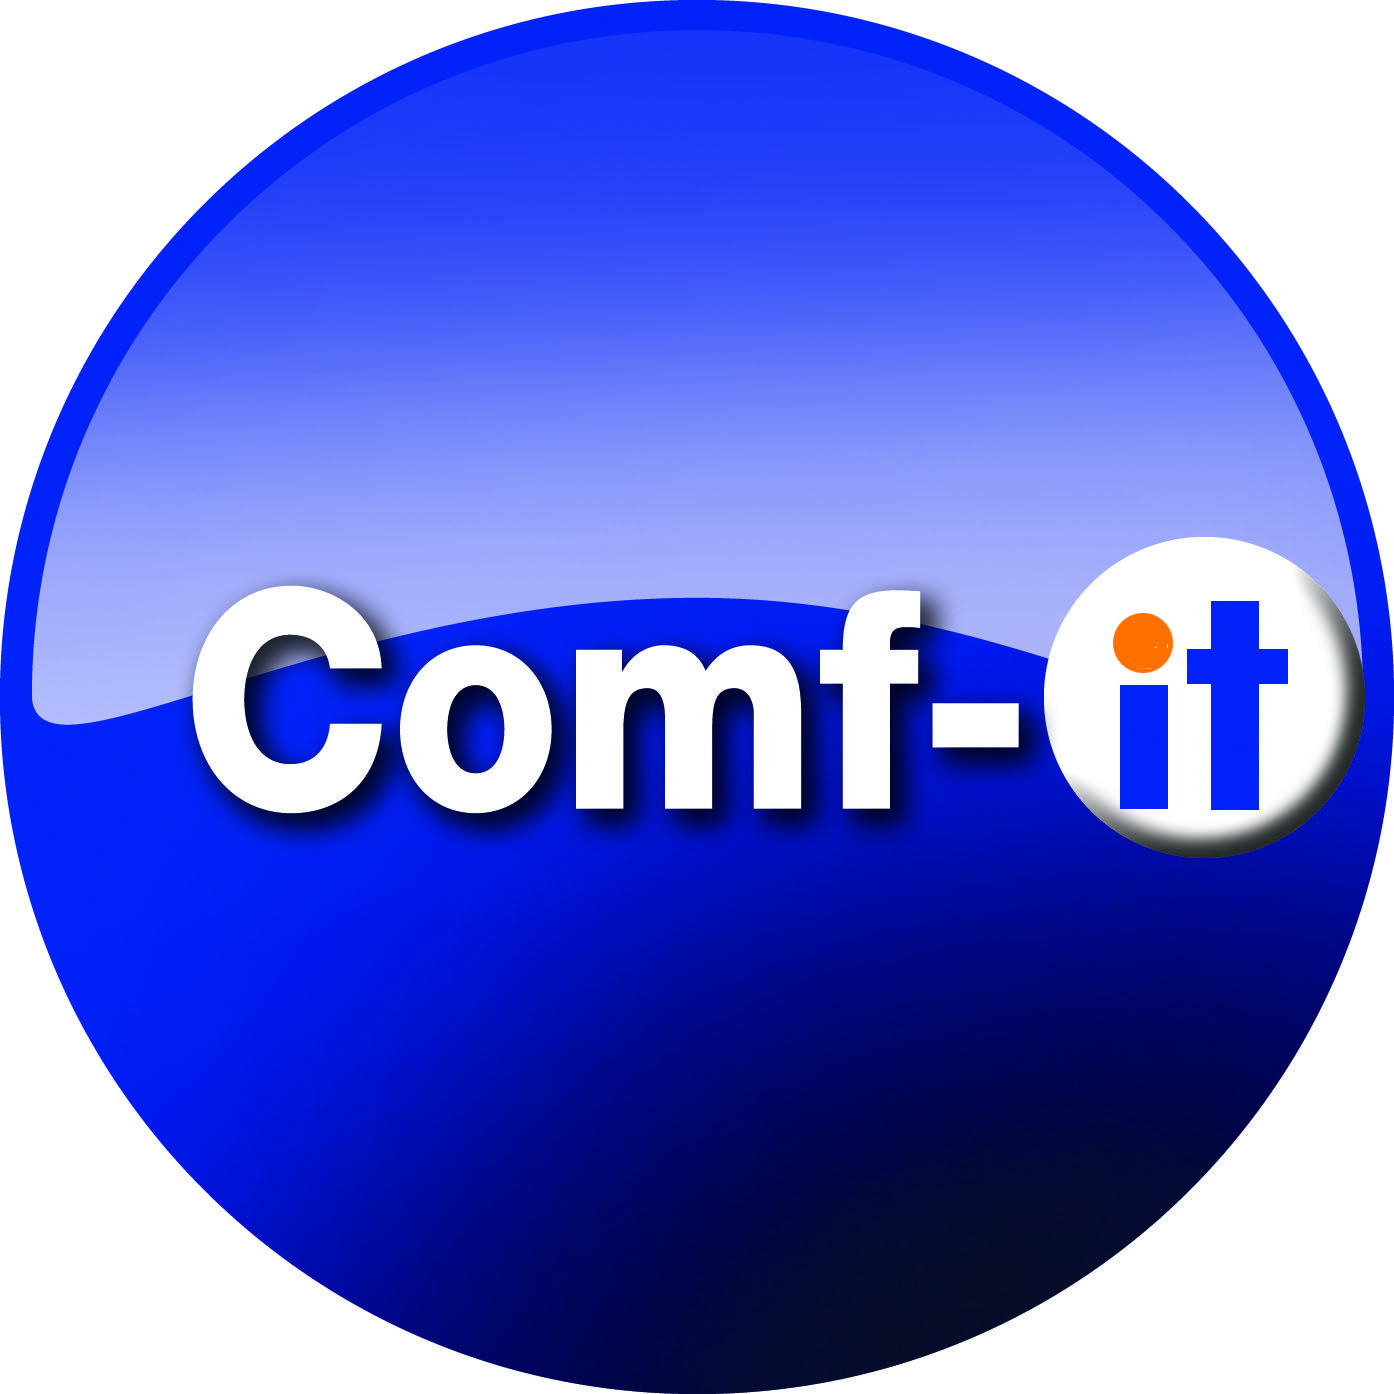 Our Comf-iT Range